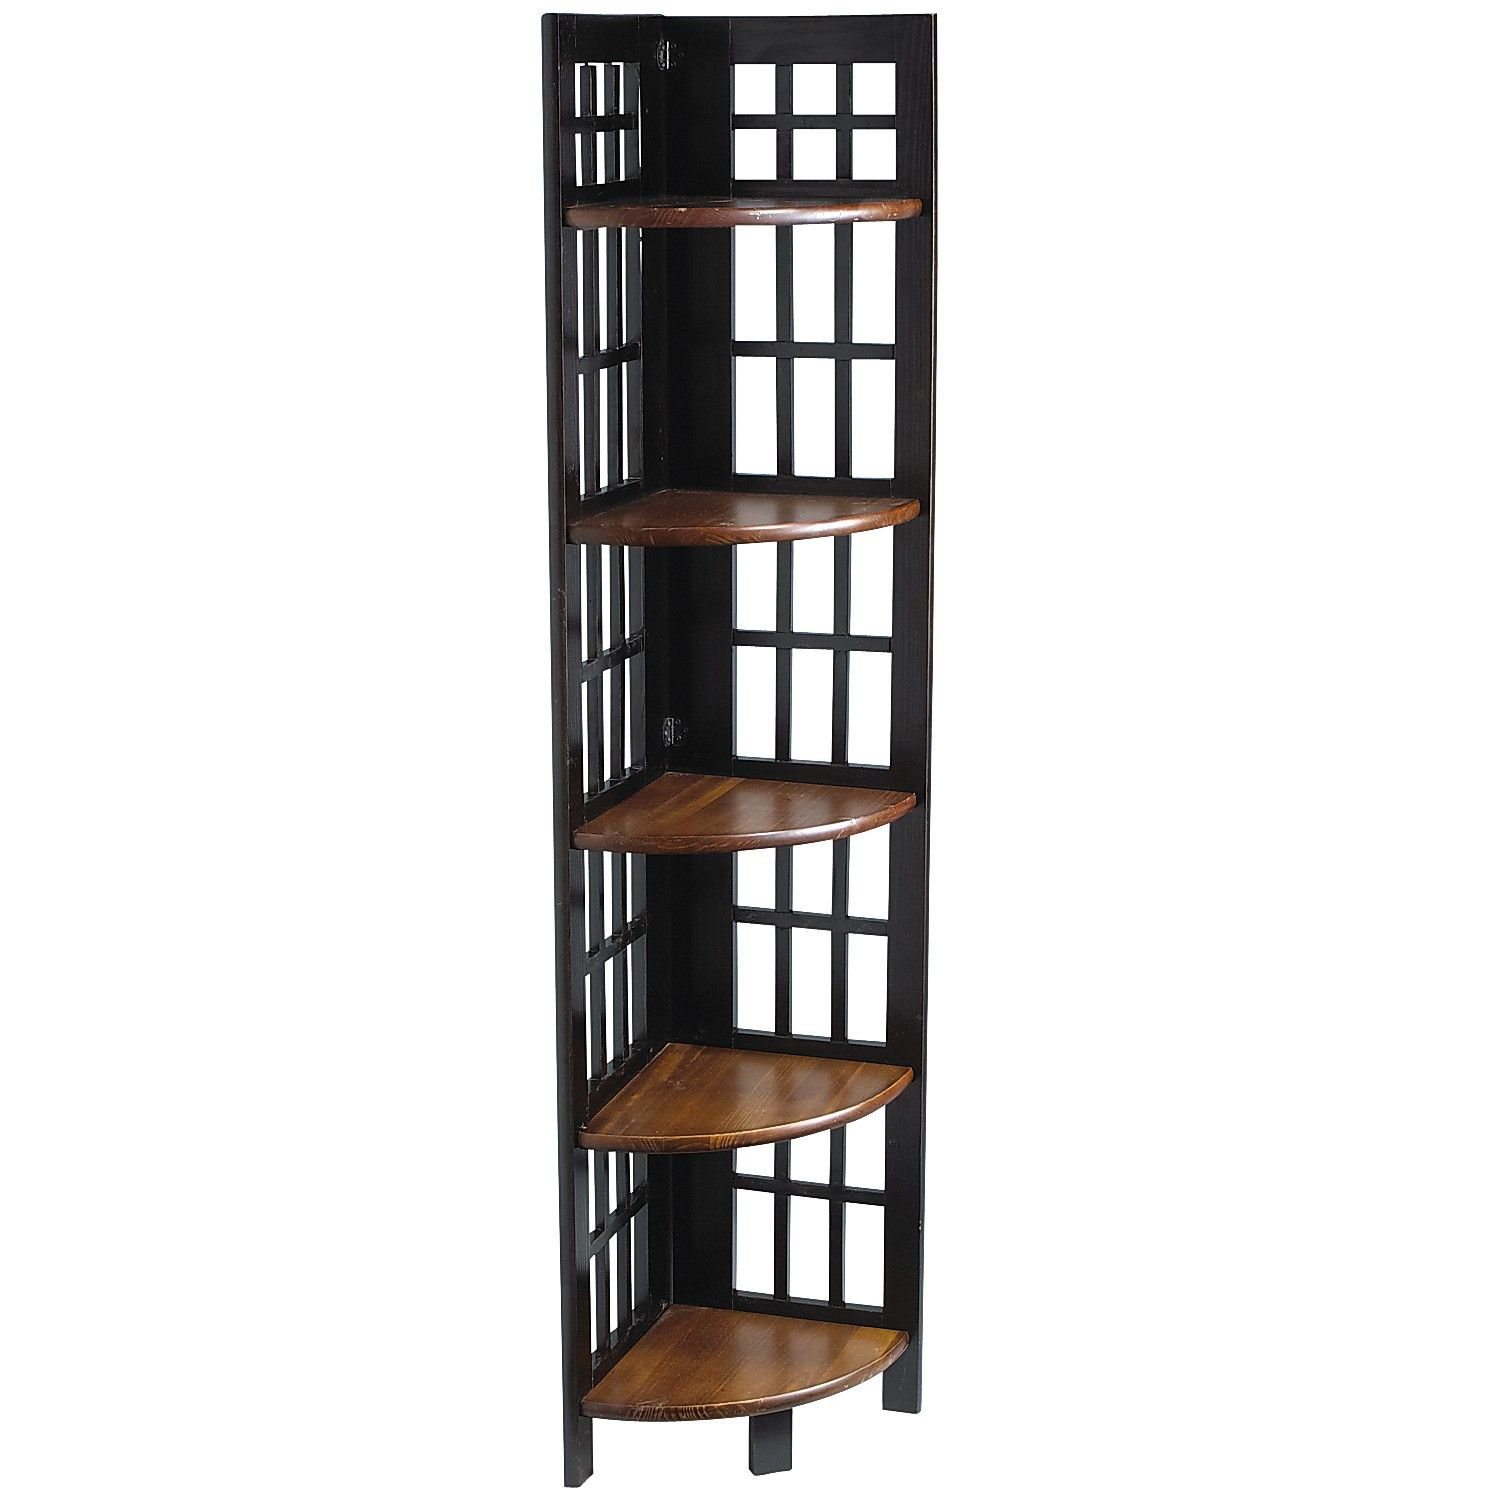 Fretted Folding - Tall Corner Shelf from Pier 1 imports